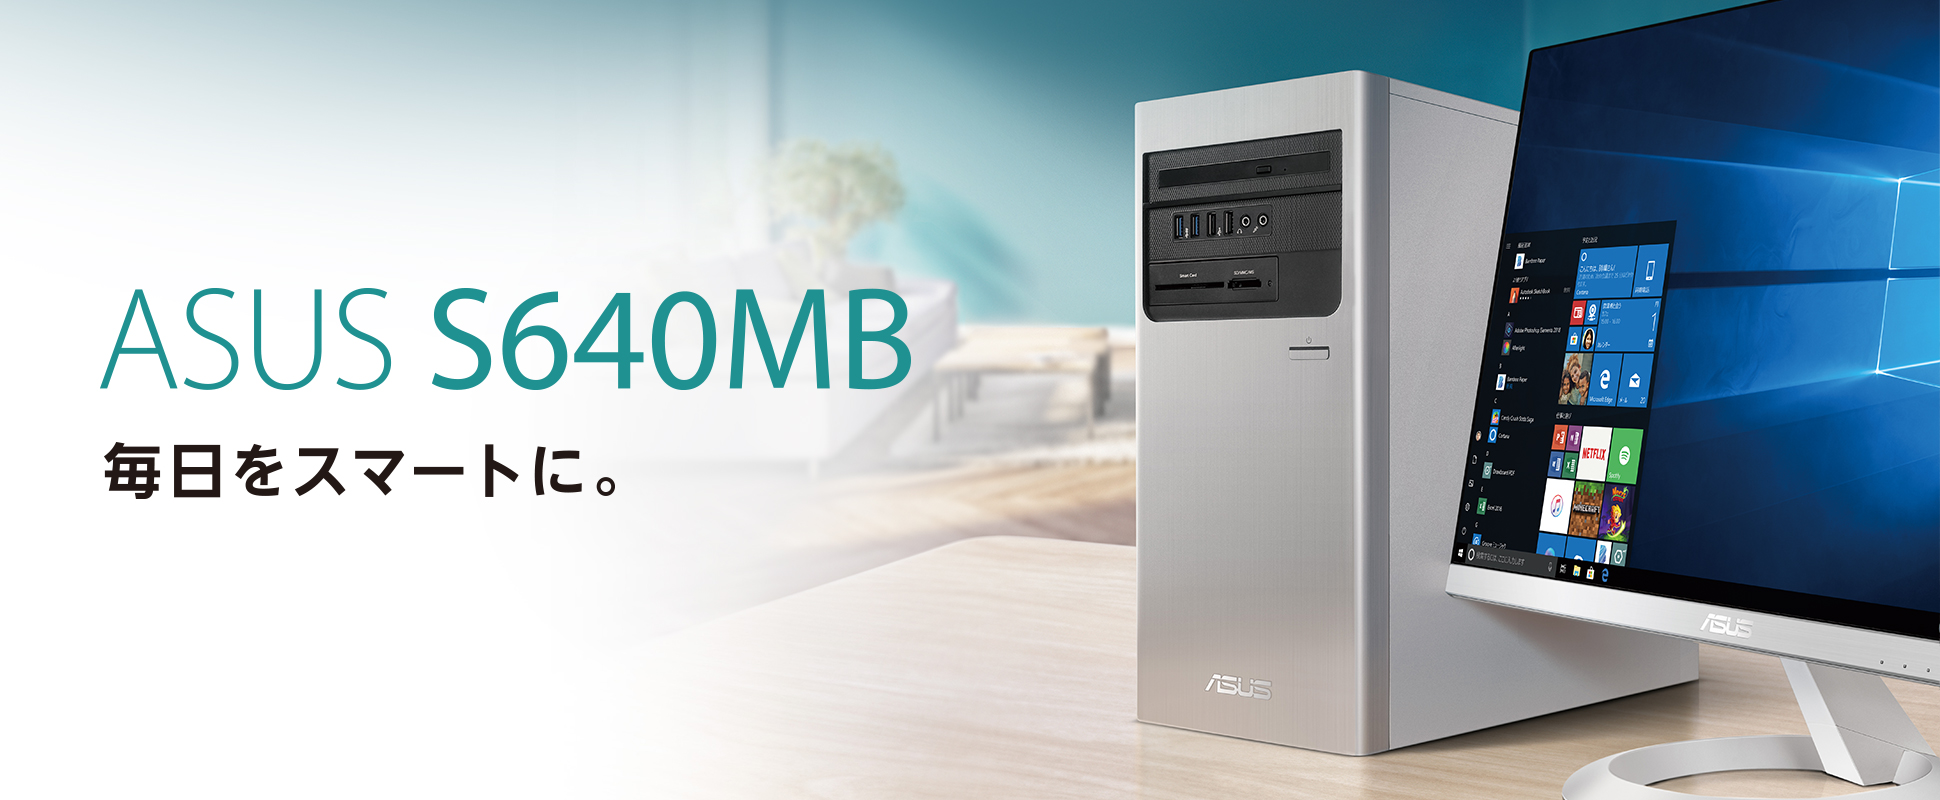 S640MB